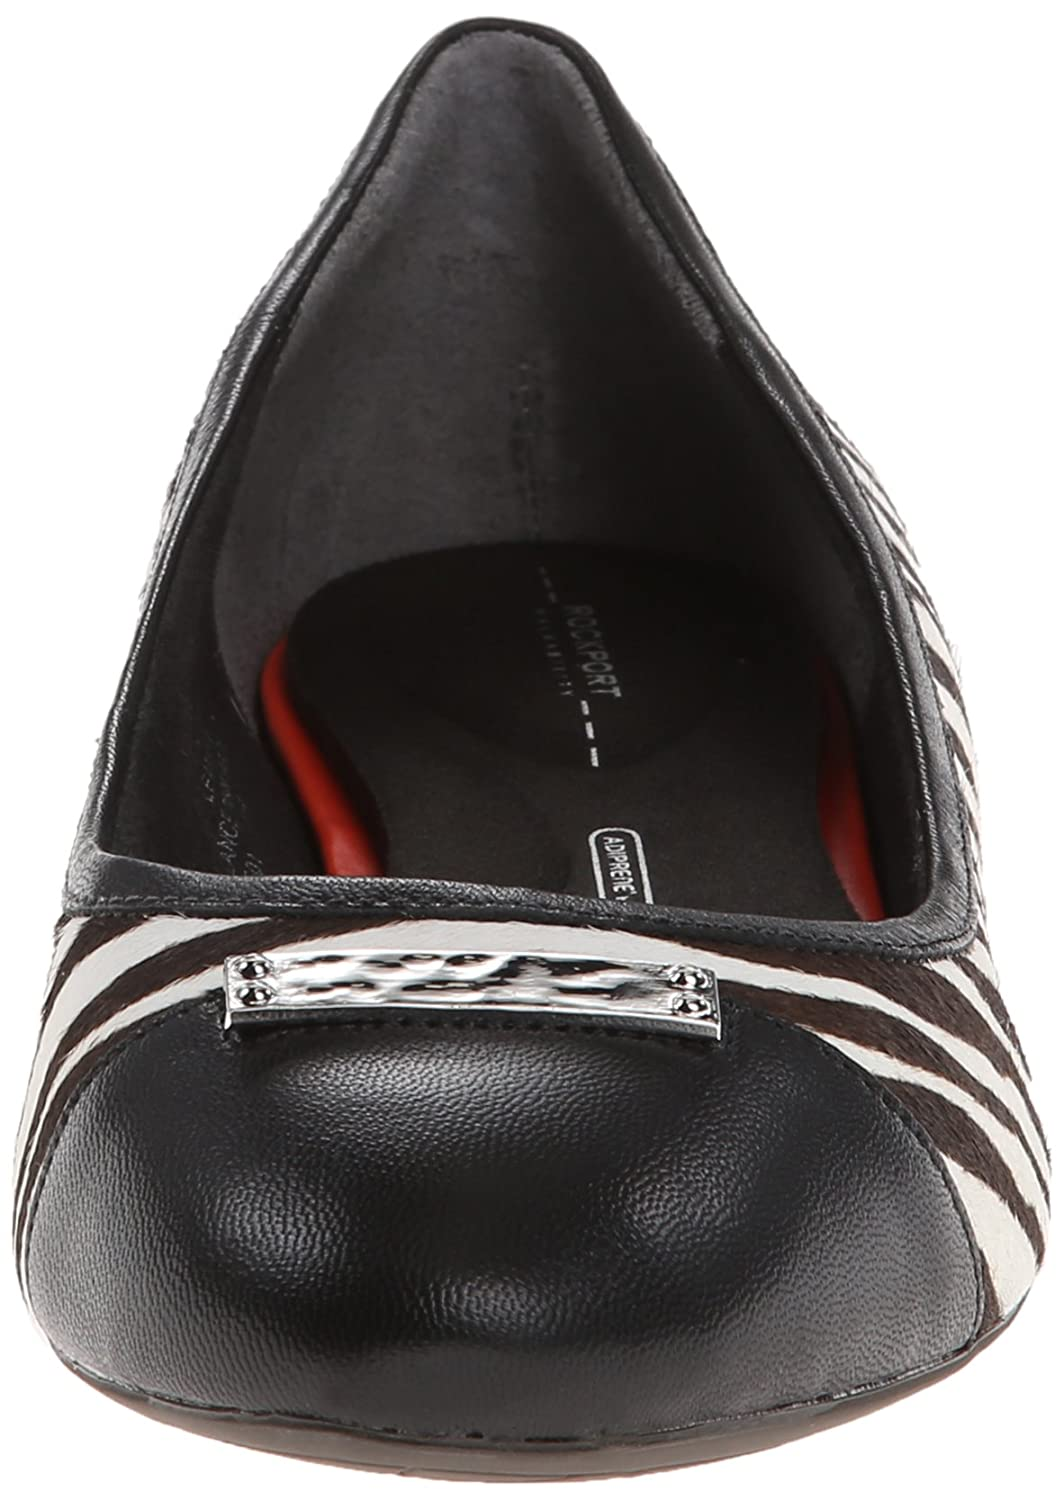 Rockport Womens Total Motion Wedge Ballet Flat